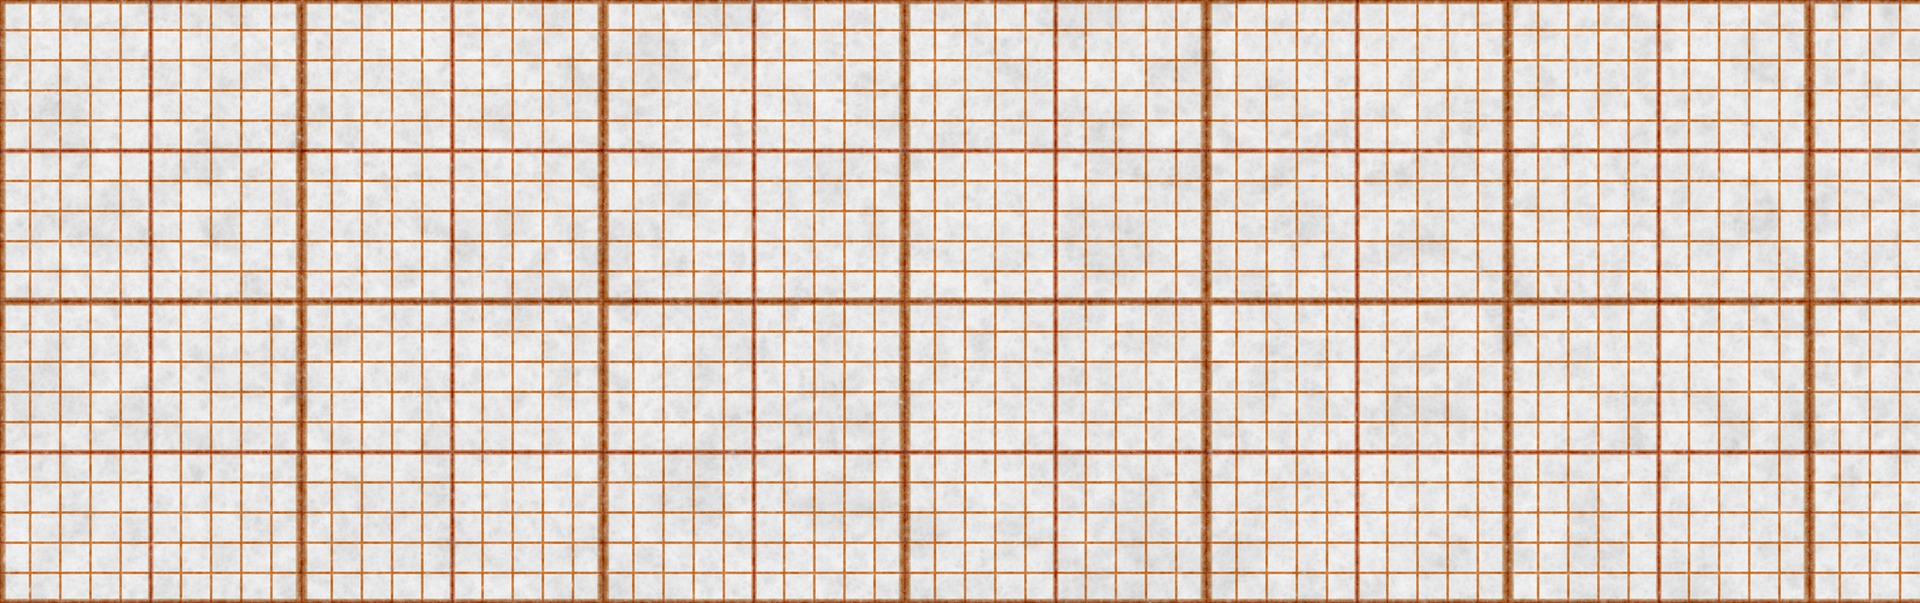 Banner Sized Graph Paper